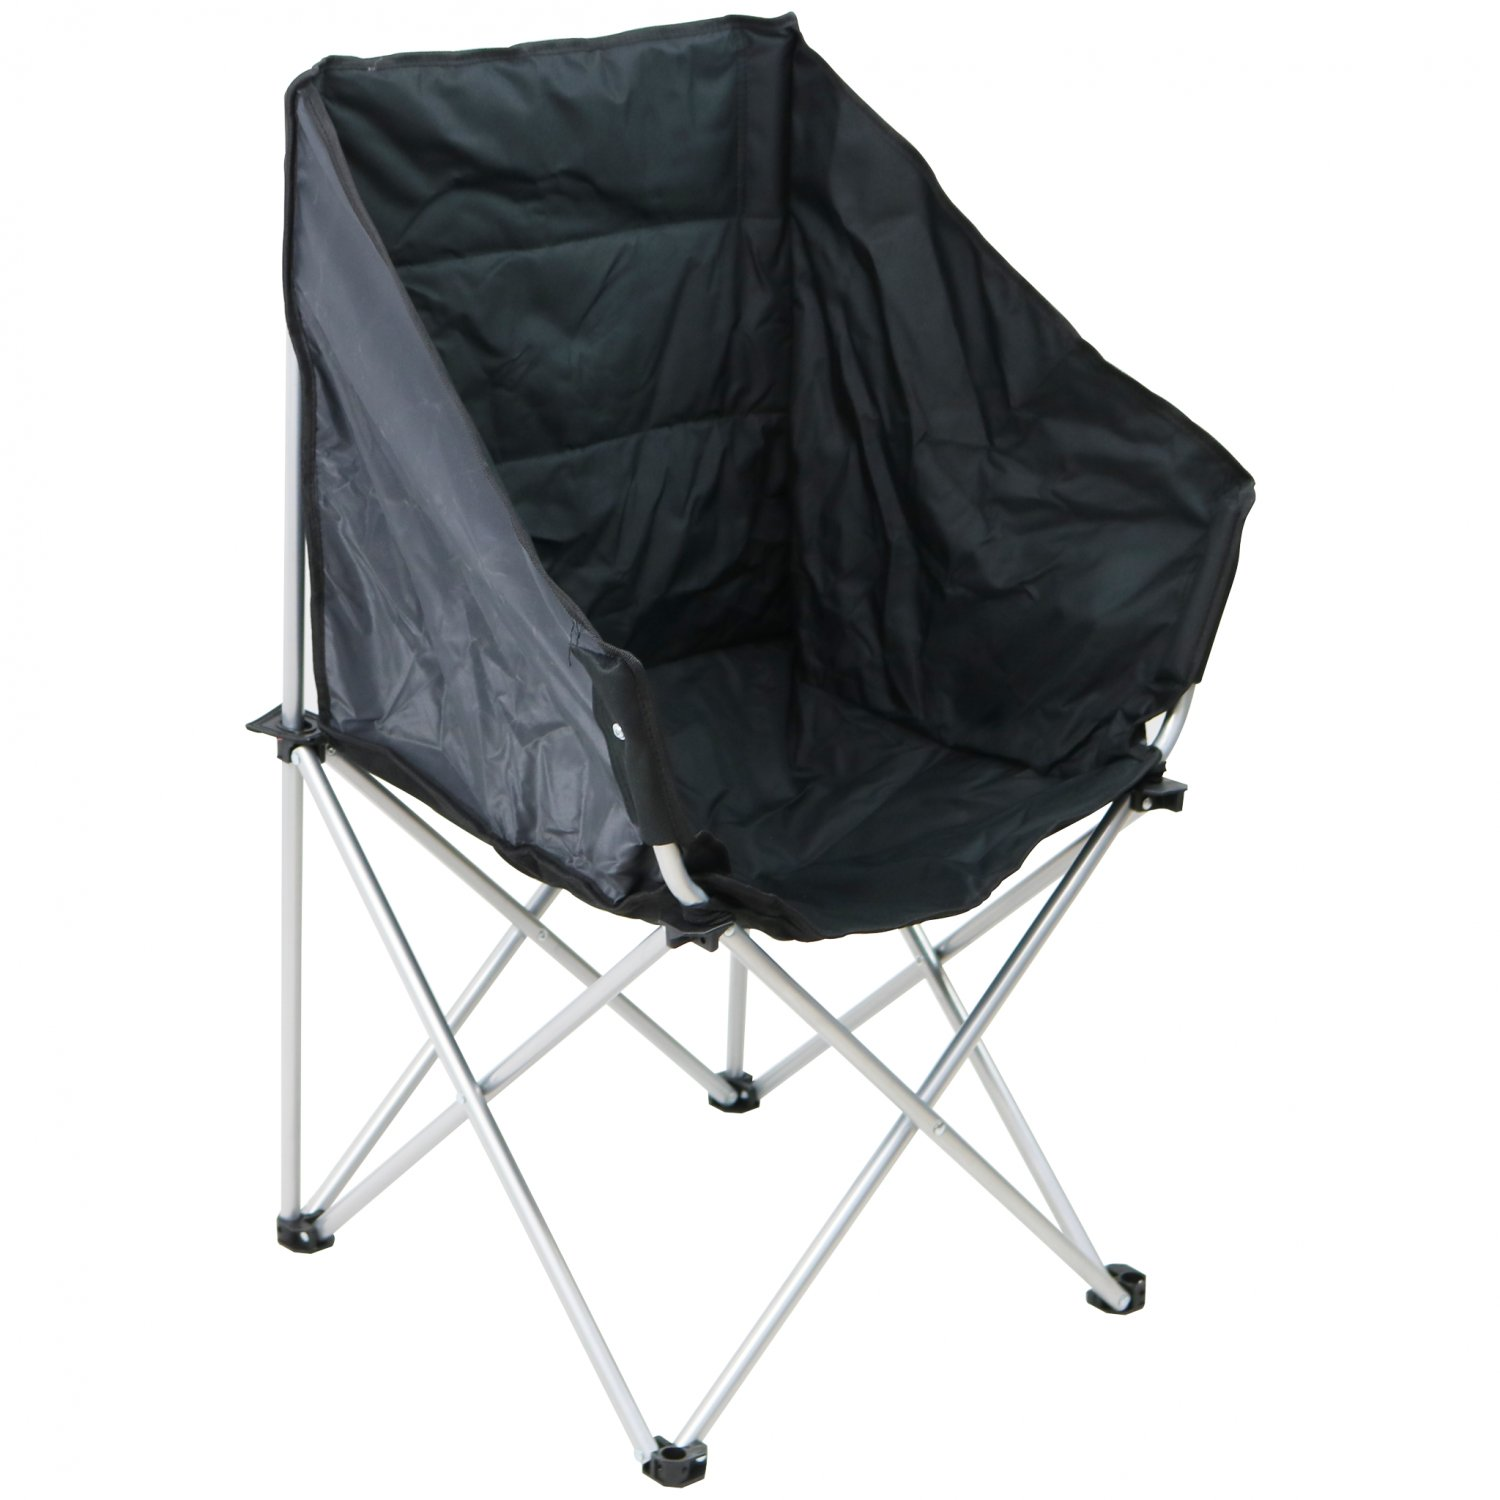 Folding Outdoor Portable Camping Padded Tub Moon Chair